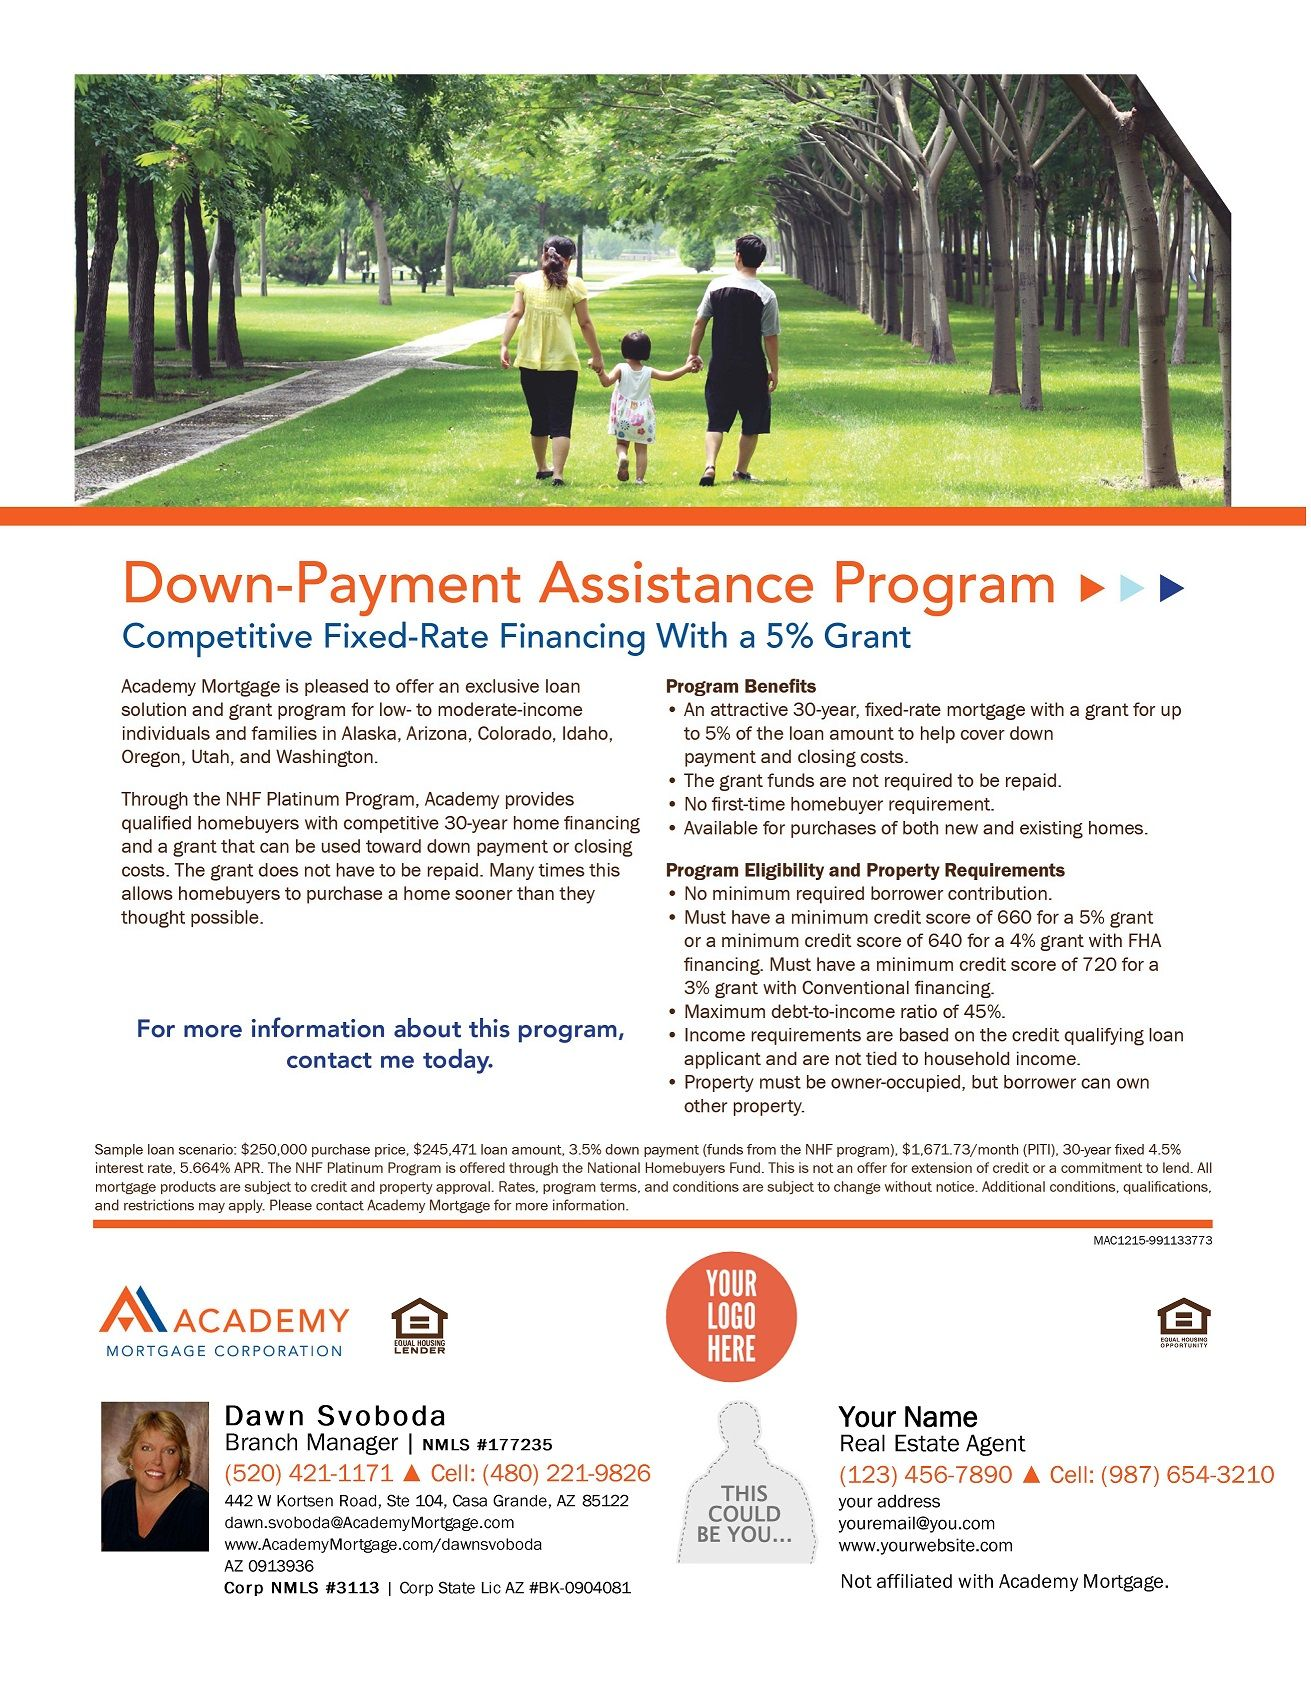 Down Payment Assistance Program With Images Finance